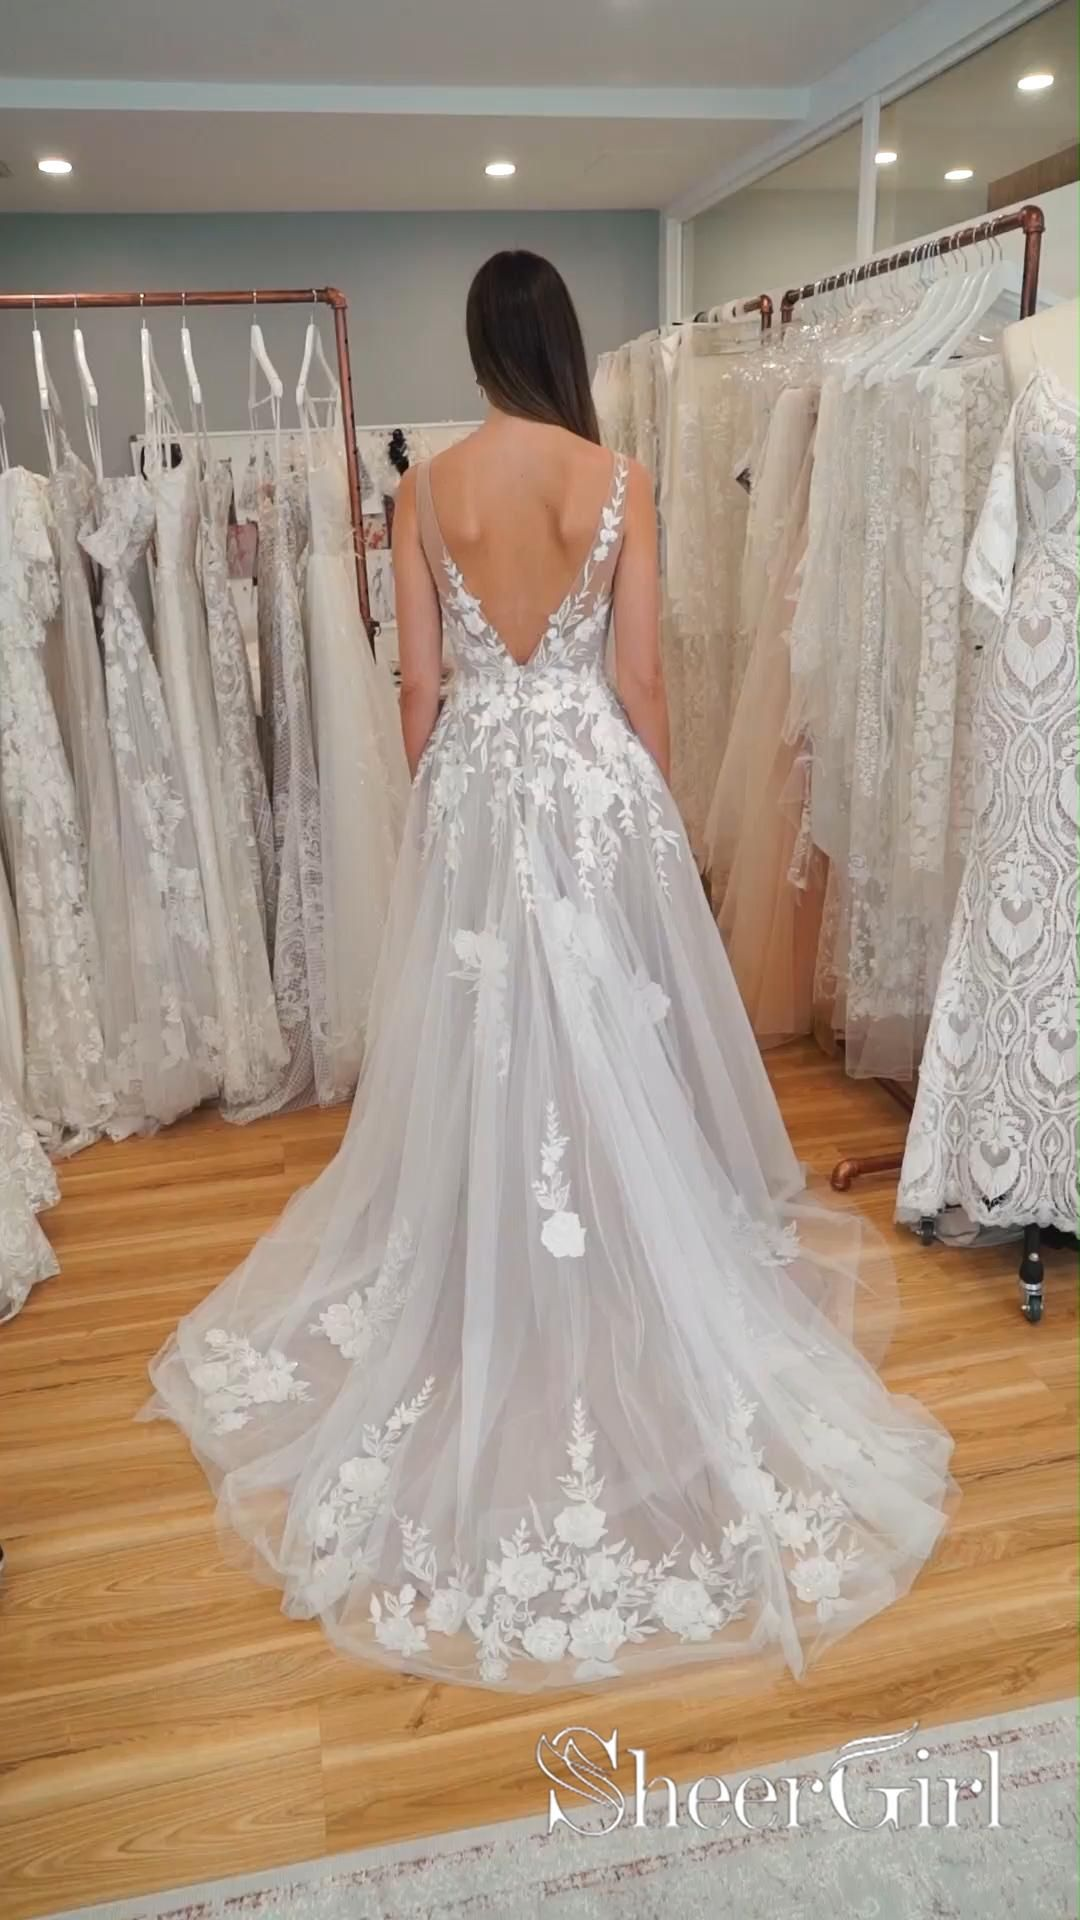 2020 New Wedding Dress Fashion Dress silver dresses for wedding size 16 formal gowns